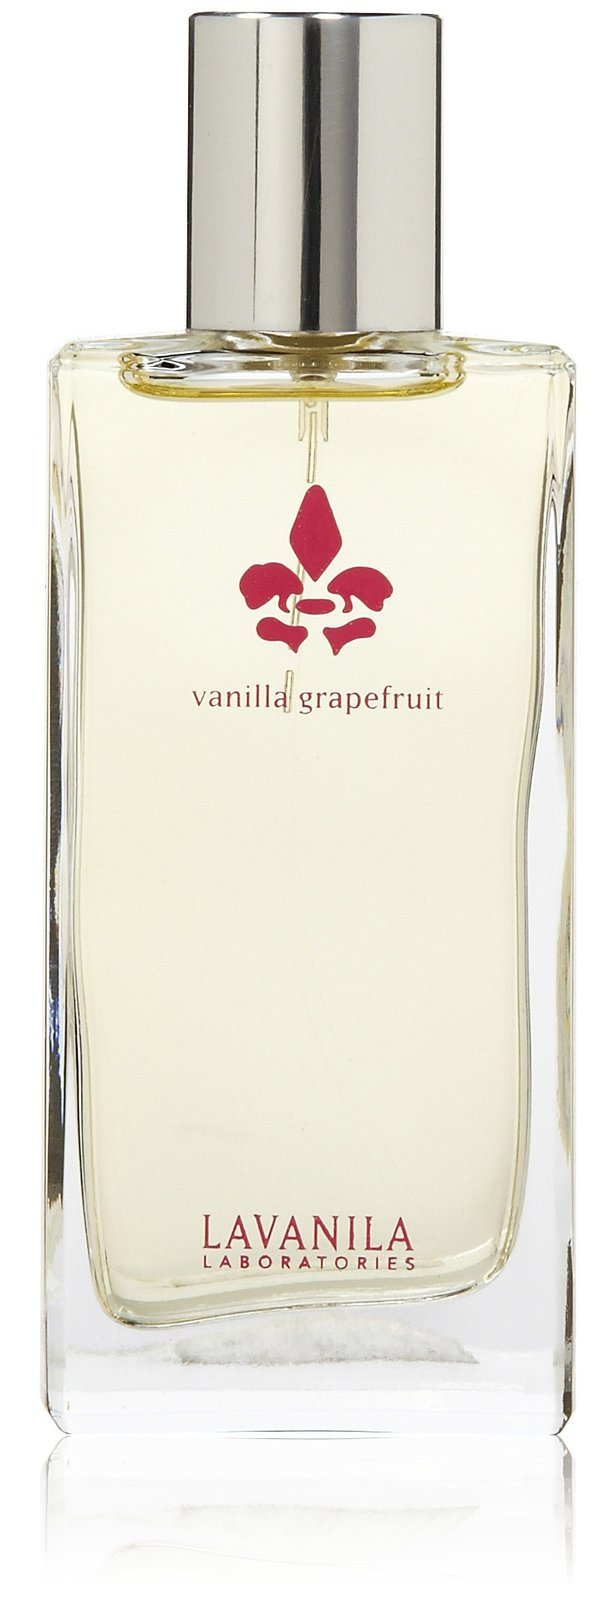 LaVanila The Healthy Fragrance Vanilla Grapefruit 1 oz